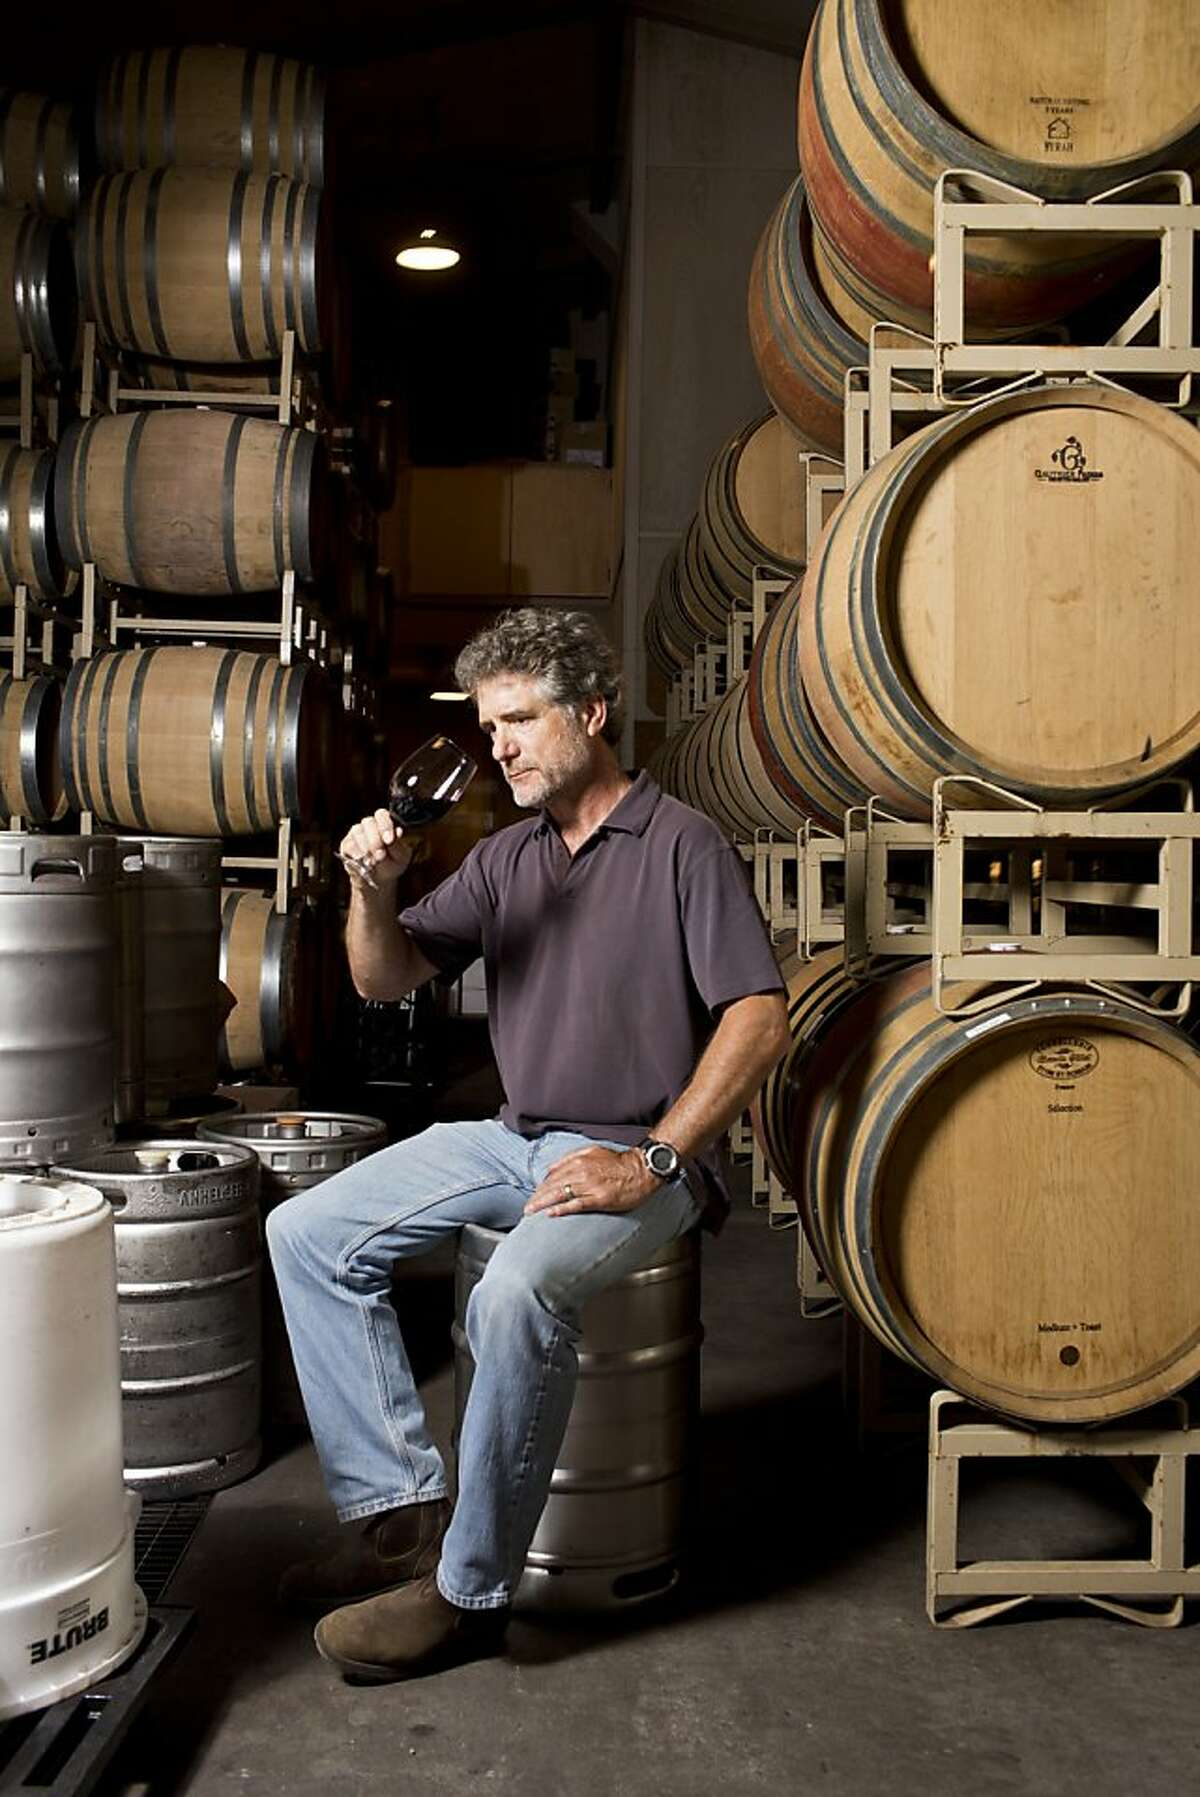 Tom Farella, of Farella Vineyard, on a ladder in his winemaking cellar in Coombsville, Calif., Thursday, August 15, 2013.